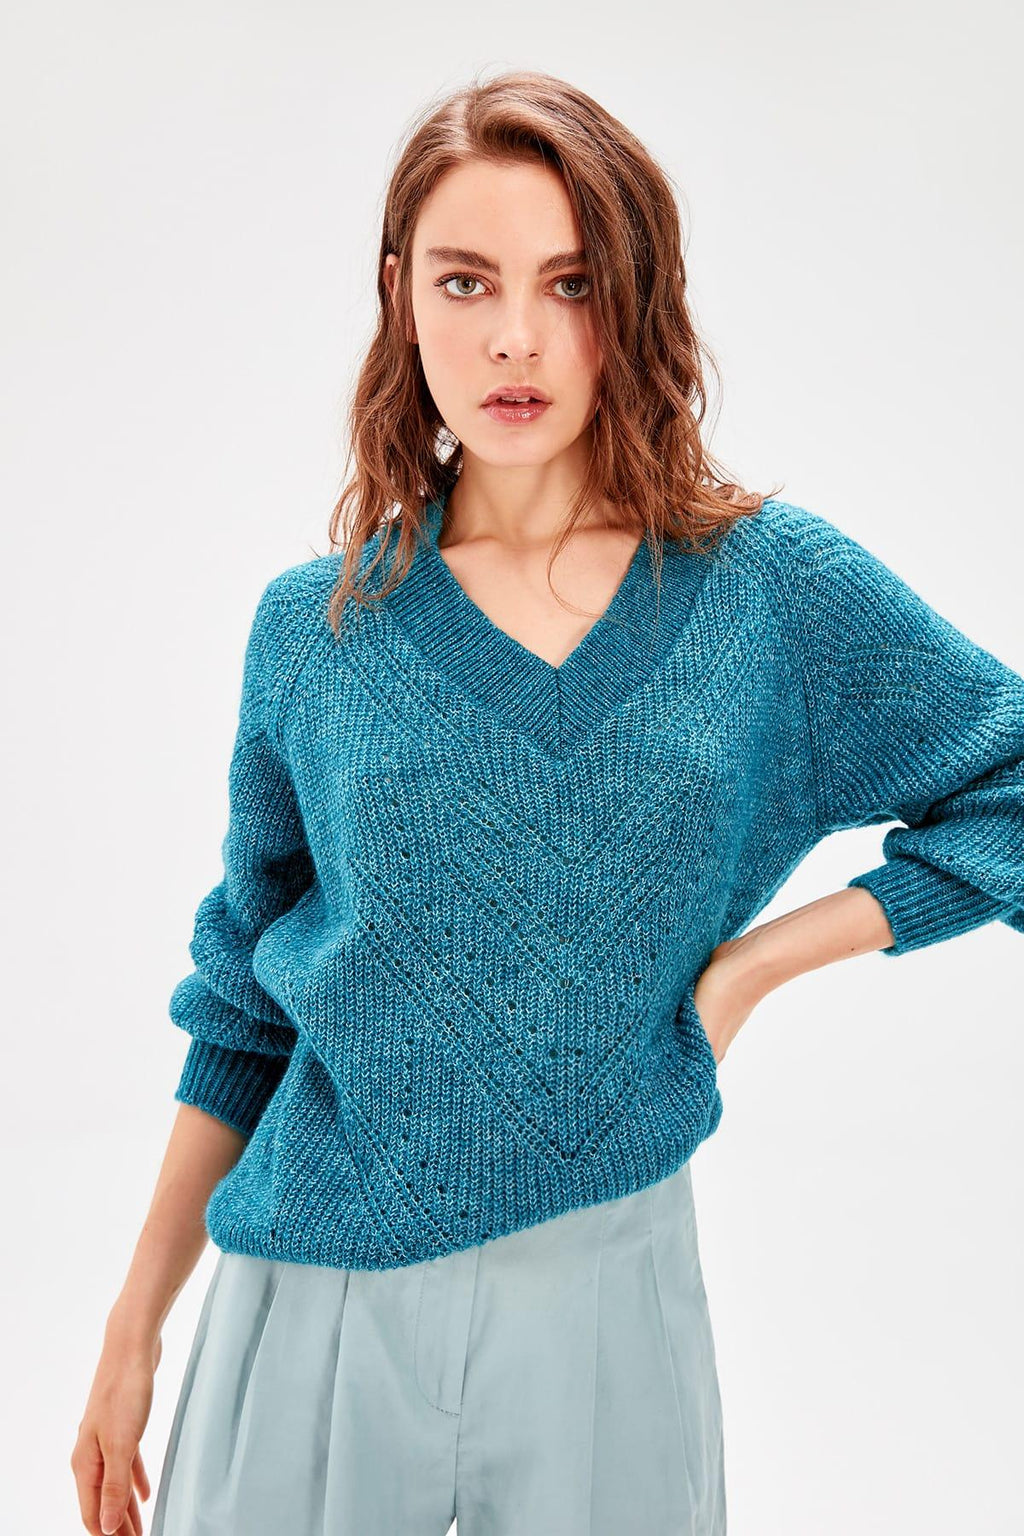 Petrol Balloon Sleeve Women Pullovers Mesh Detail Knitwear Sweater - emuuz.com